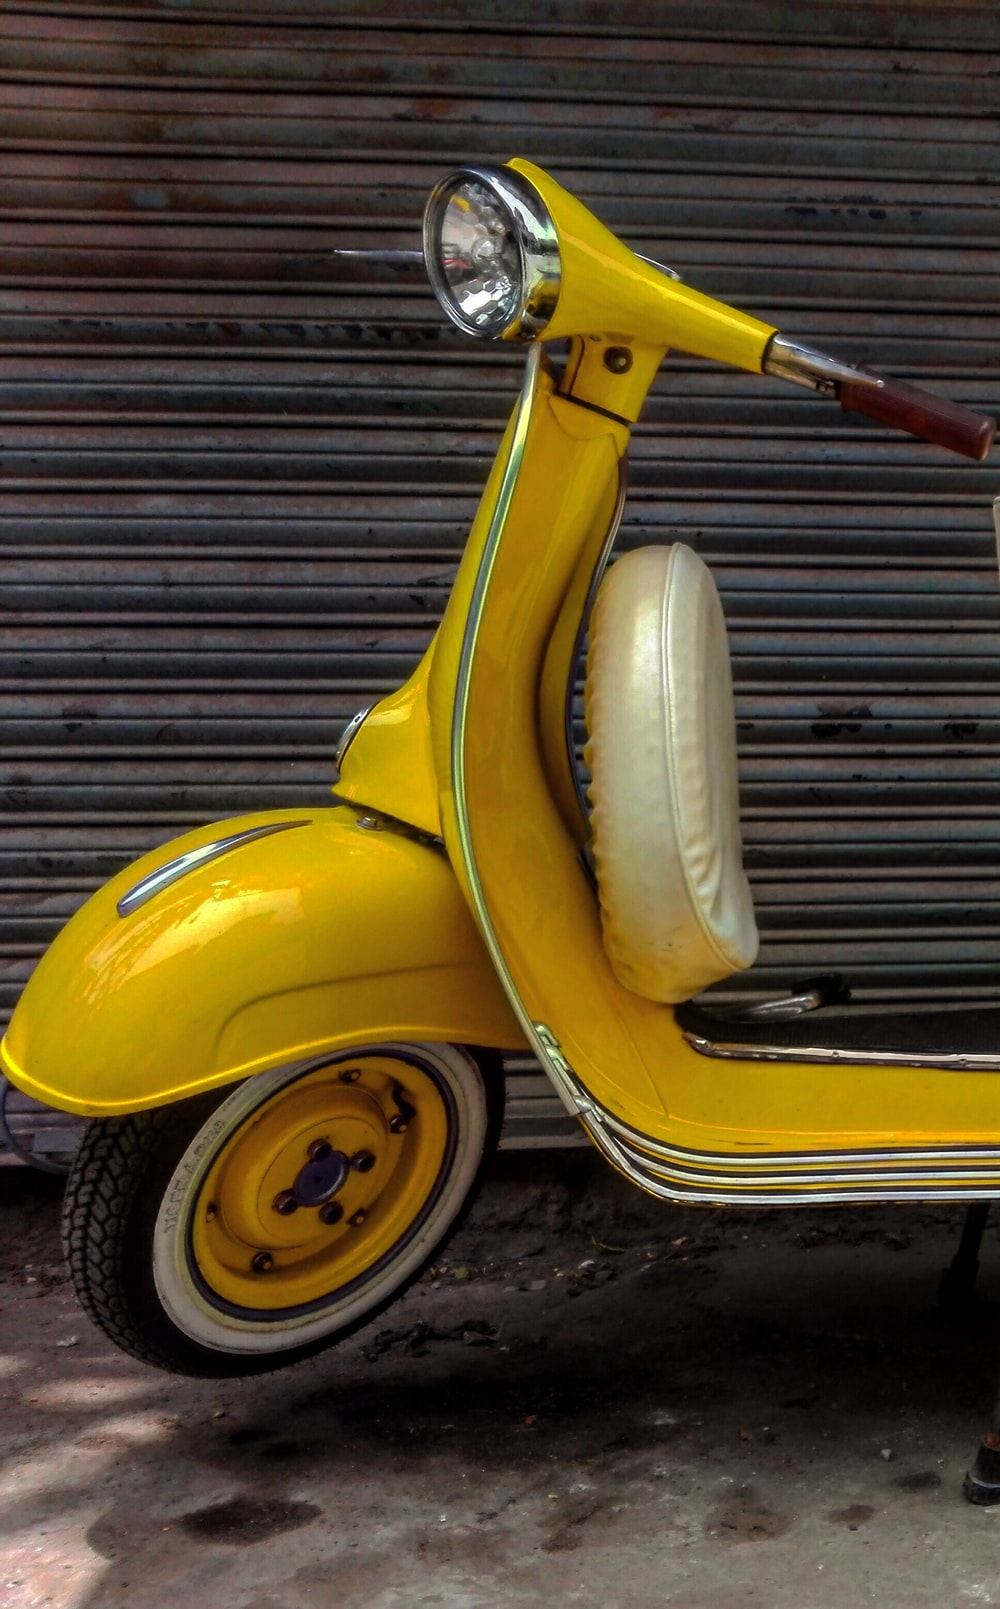 yellow and white motor scooter